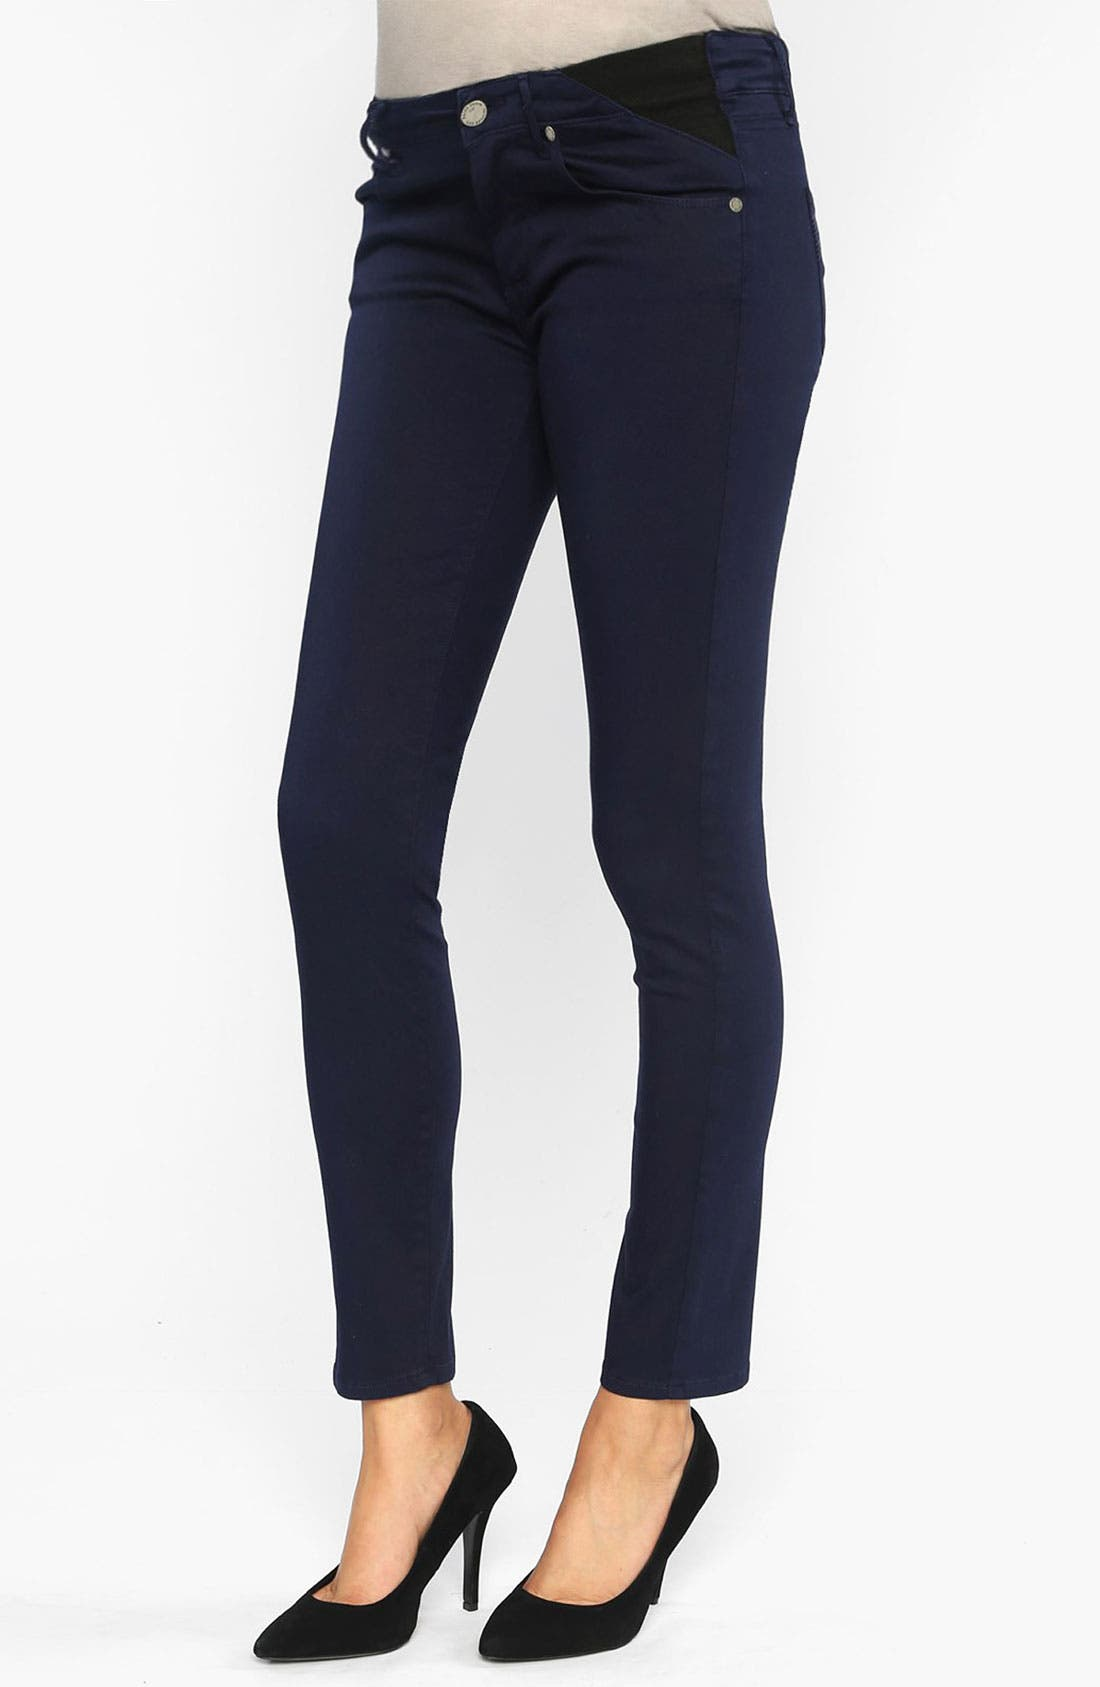 Main Image - Paige Denim 'Verdugo' Maternity Ankle Ultra Skinny Jeans (Pacific Dusk)